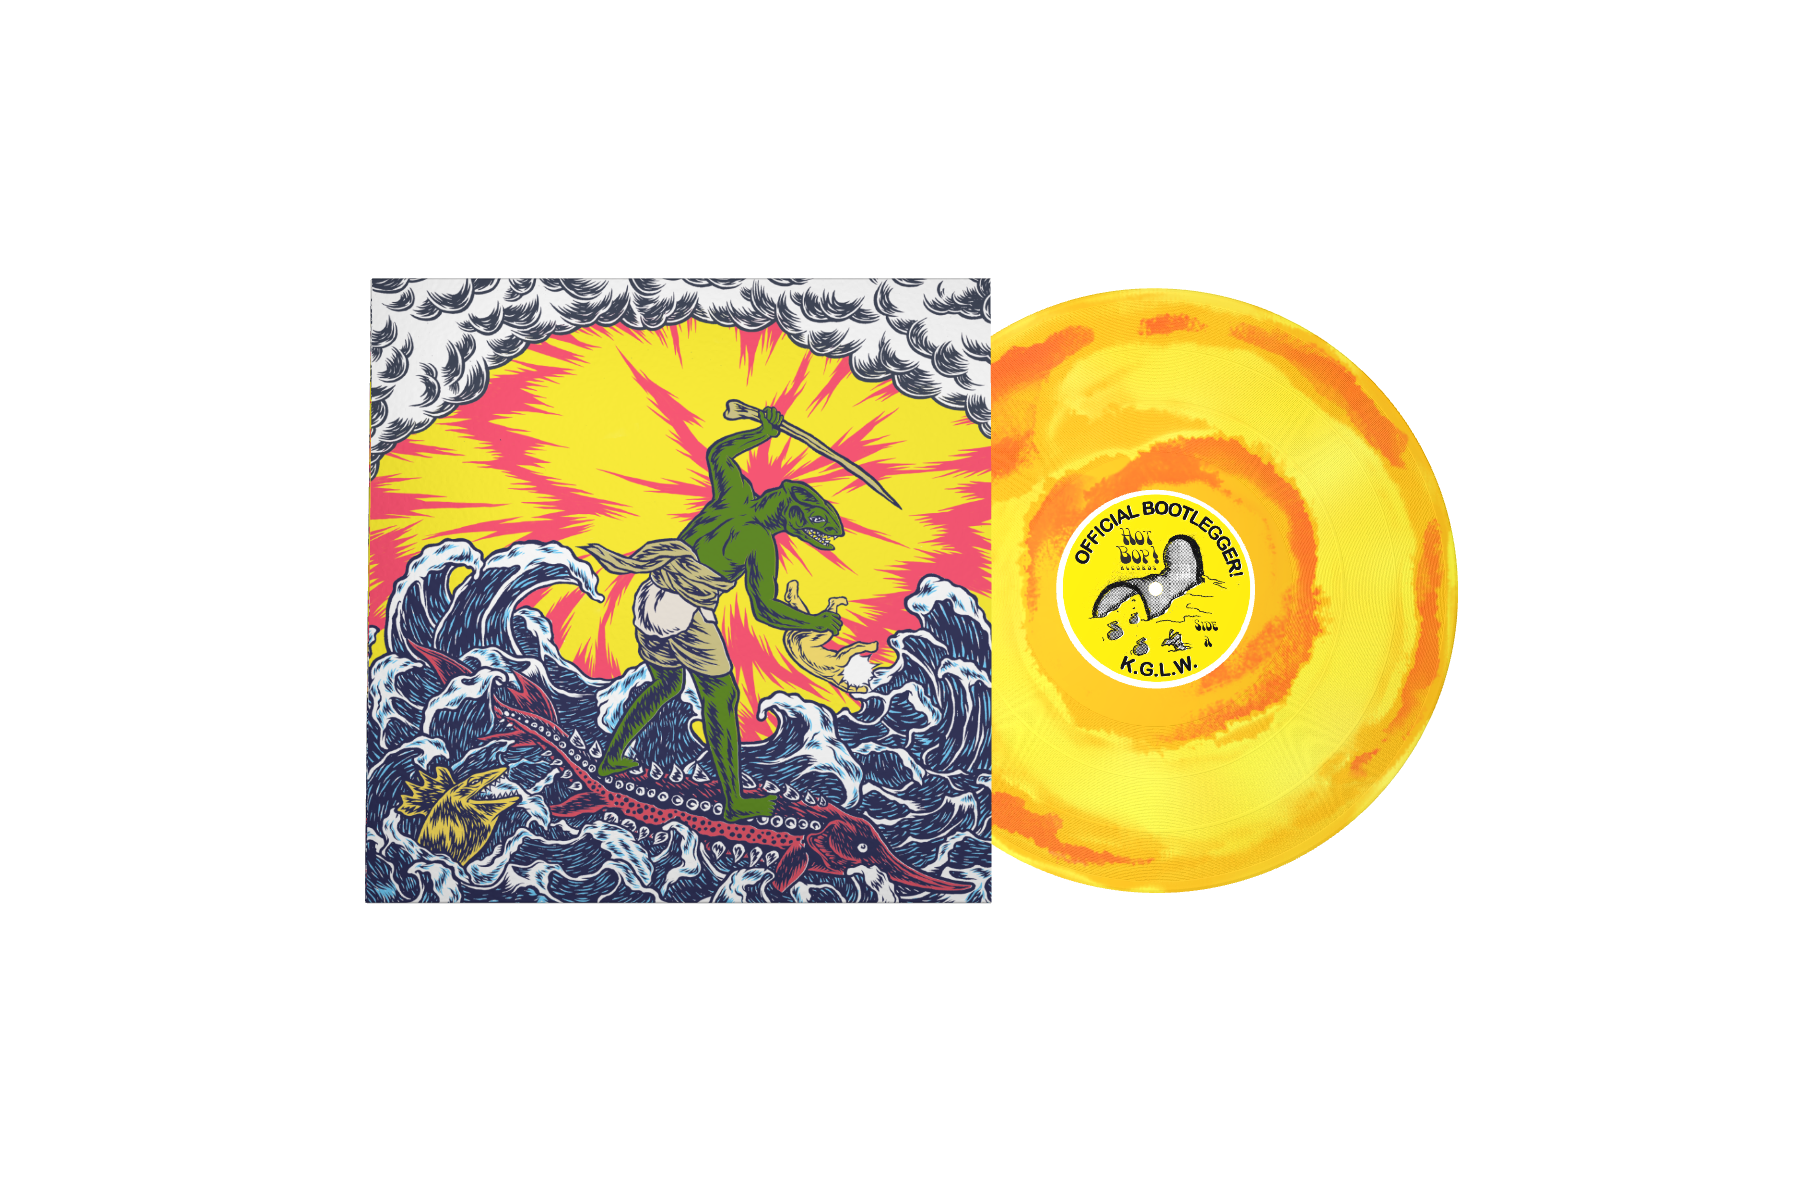 Limited edition King Gizzard & the Lizard Wizard vinyl – ALL proceeds to Mind mental health charity